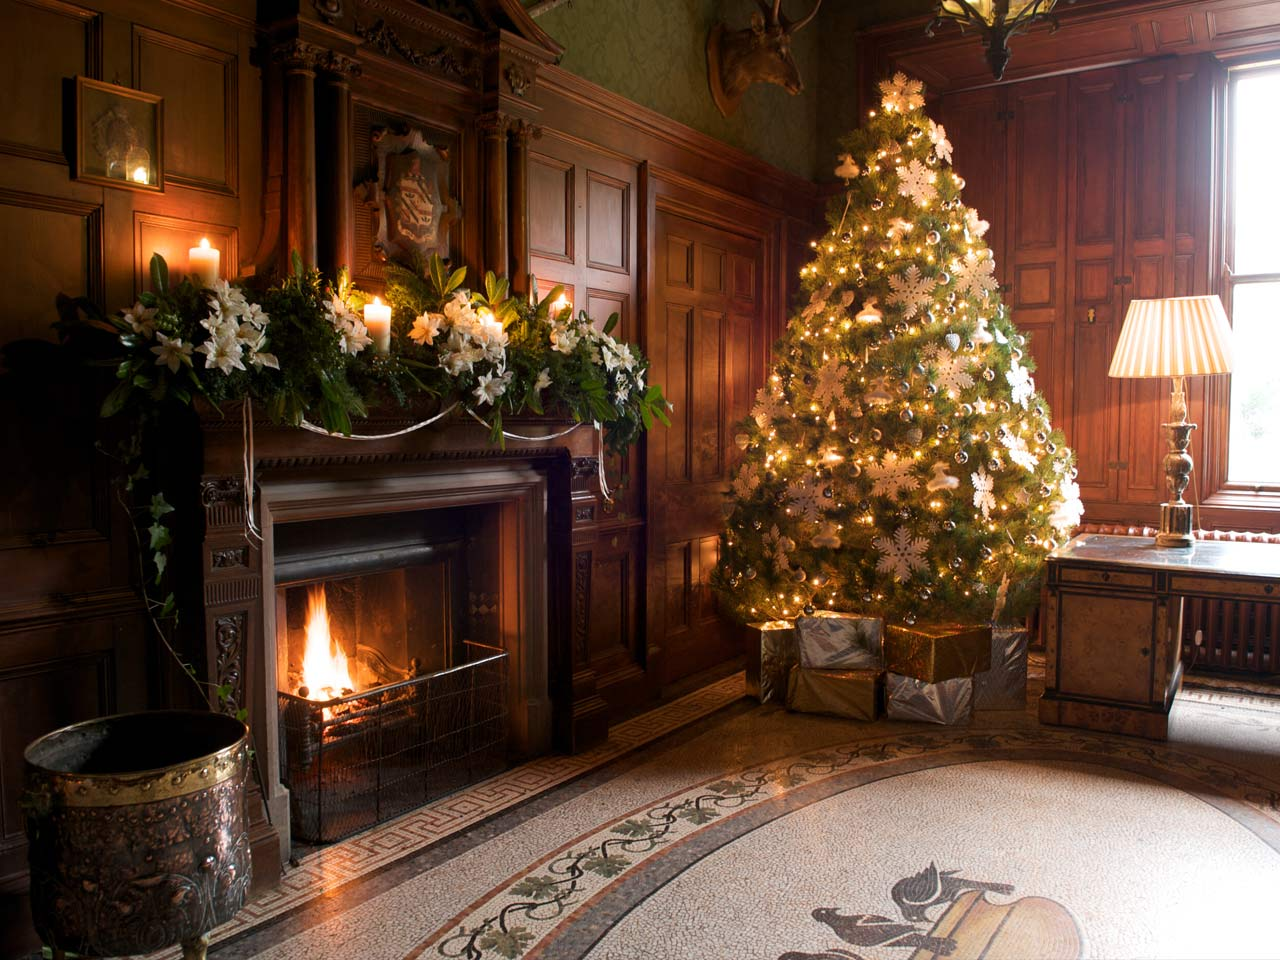 Christmas decoration all around the world - Others Luxury Chocolate Christmas Fireplace Decor Idea With